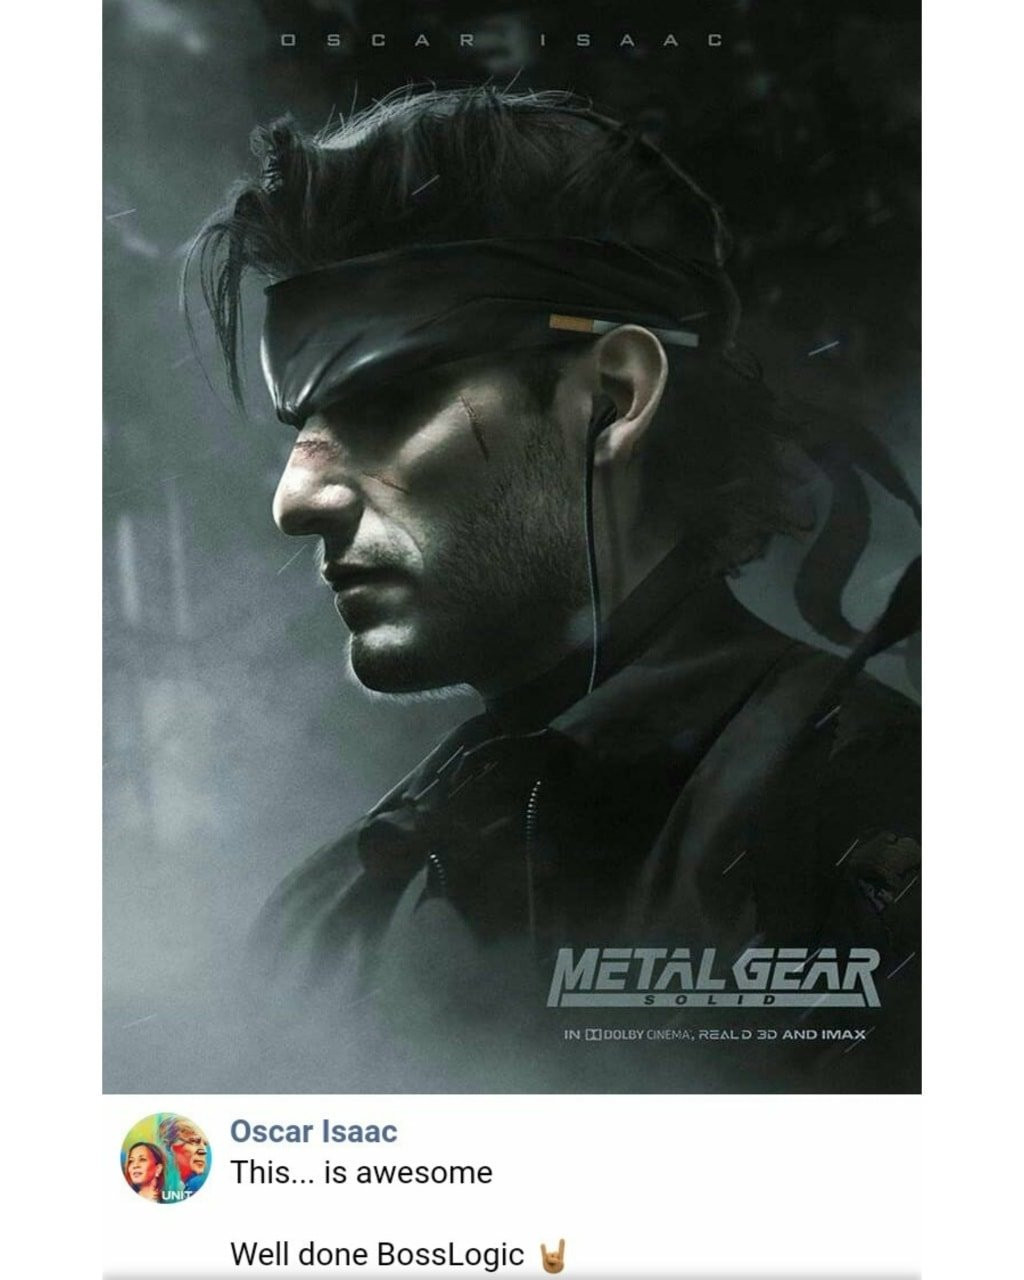 Oscar Isaac Solid Snake Metal Gear Fan Art